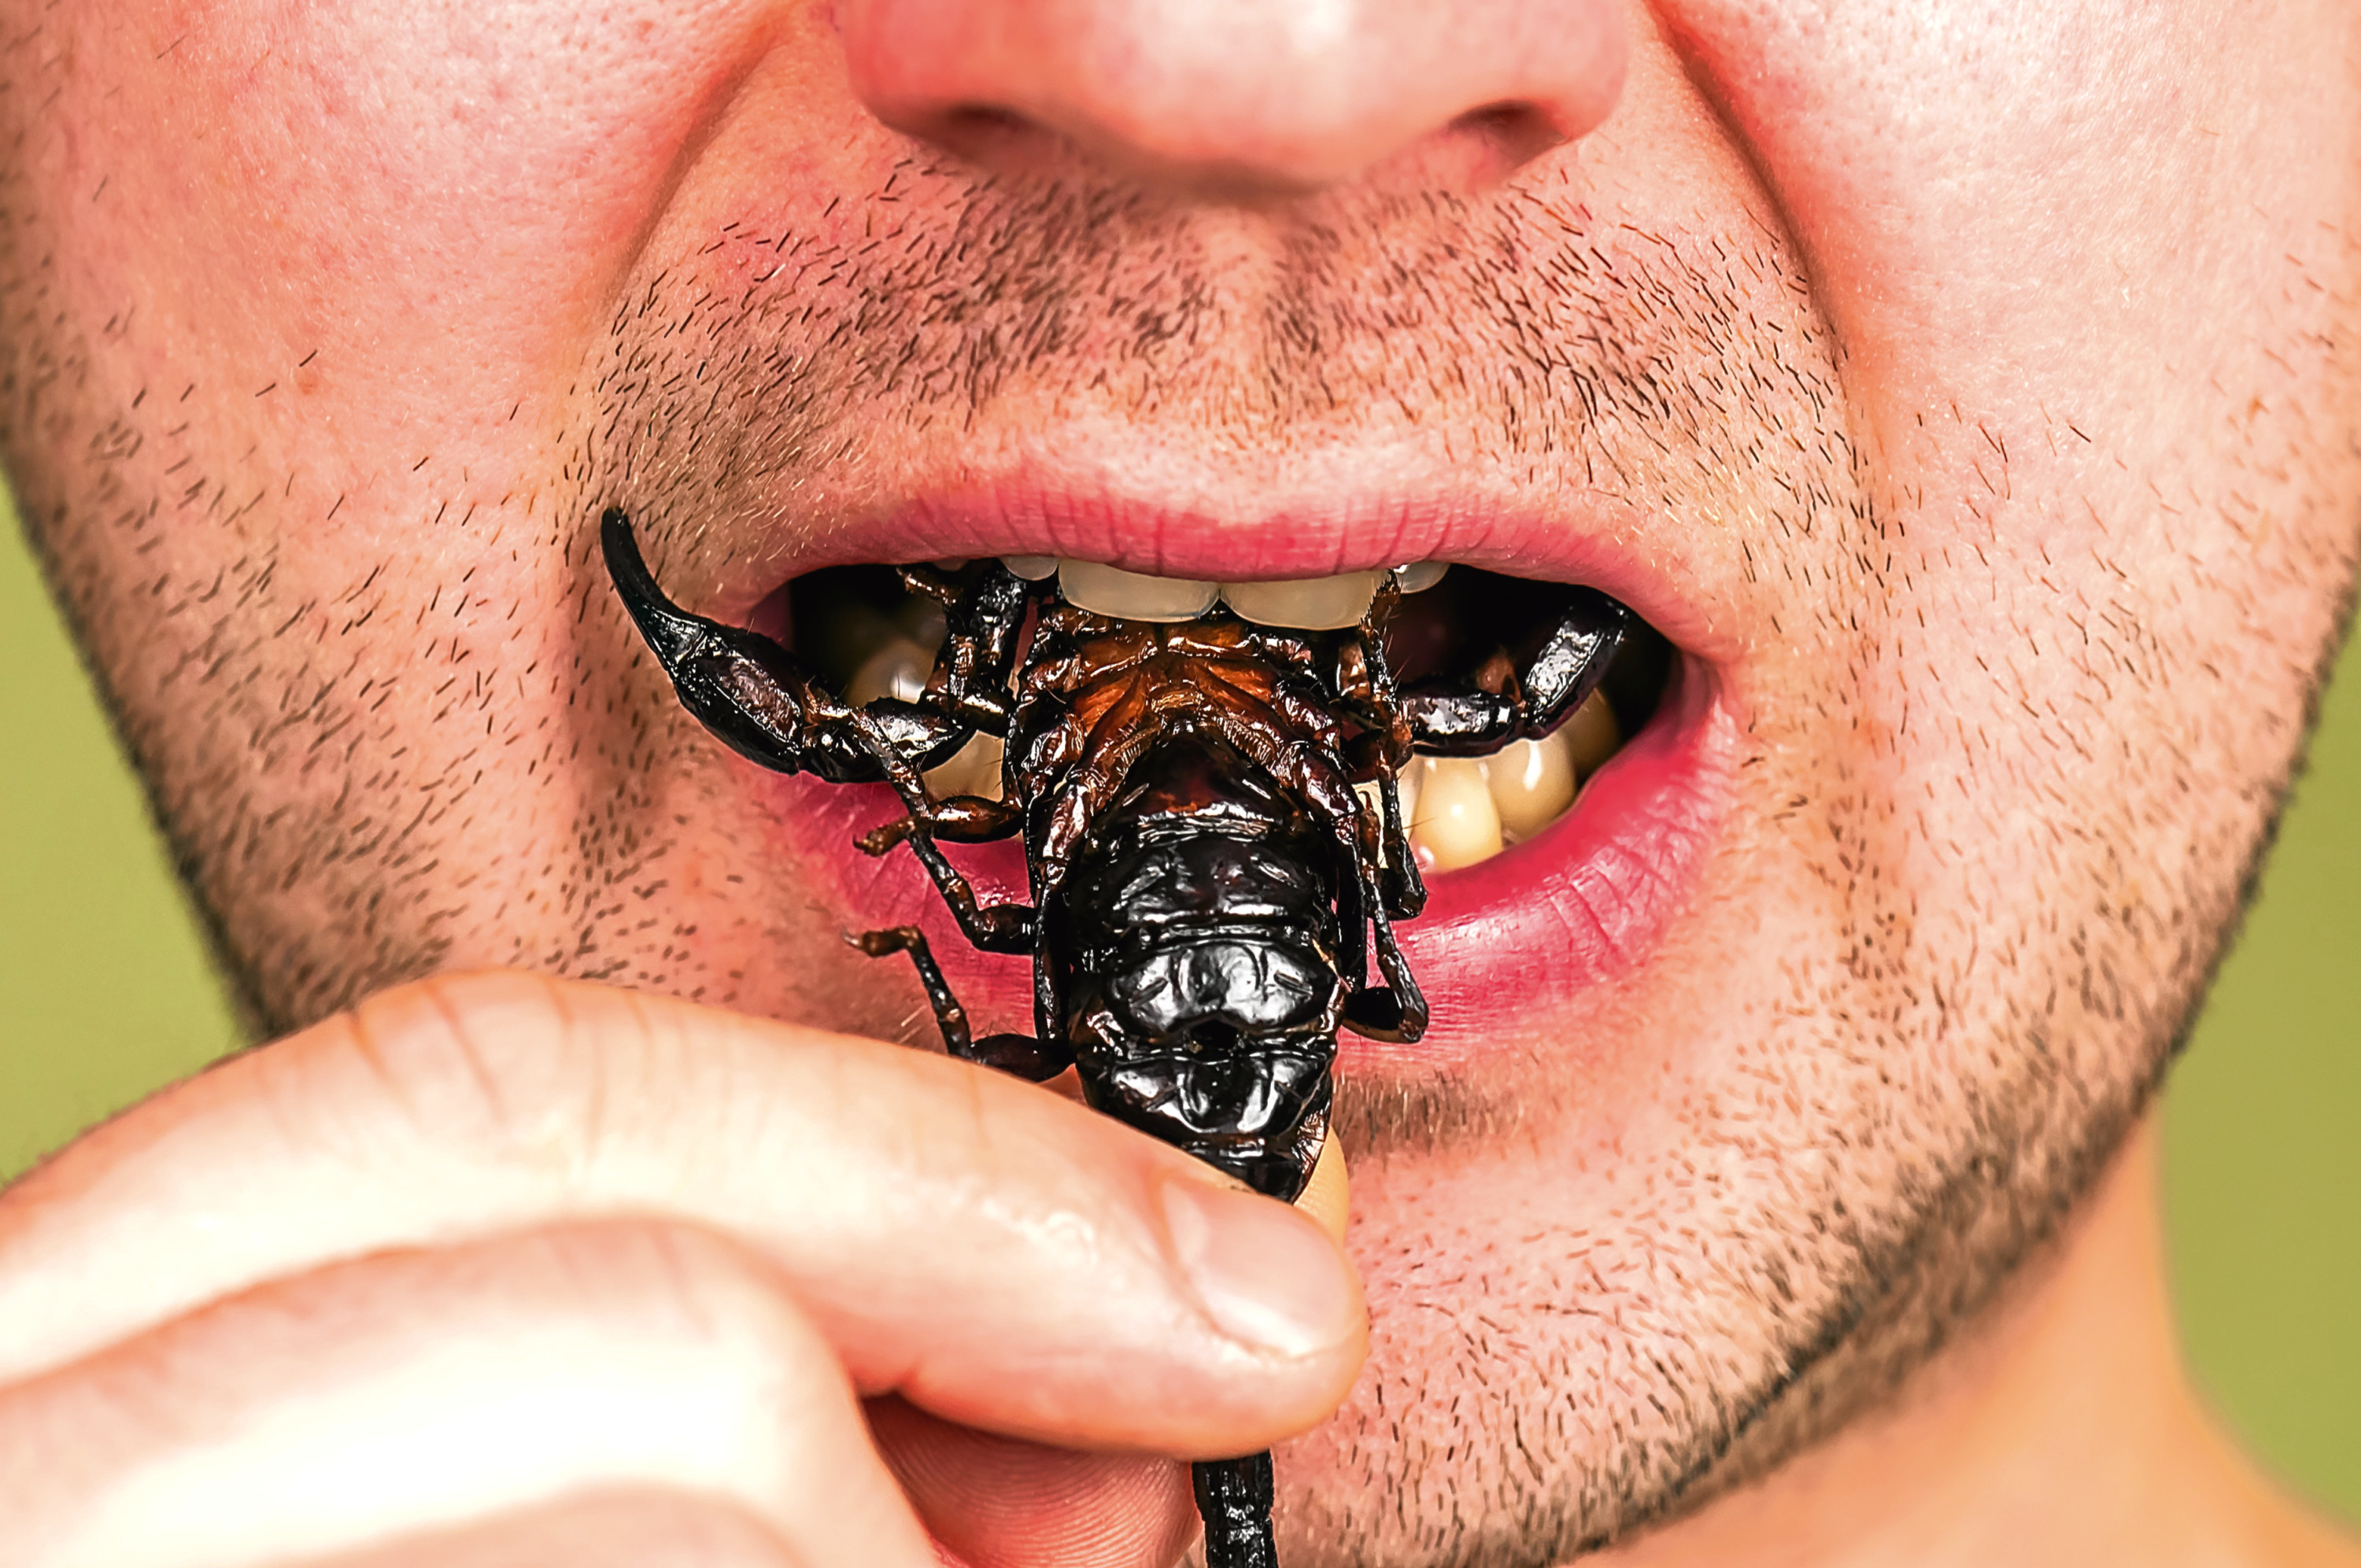 man (gourmet) eats a roasted black scorpion